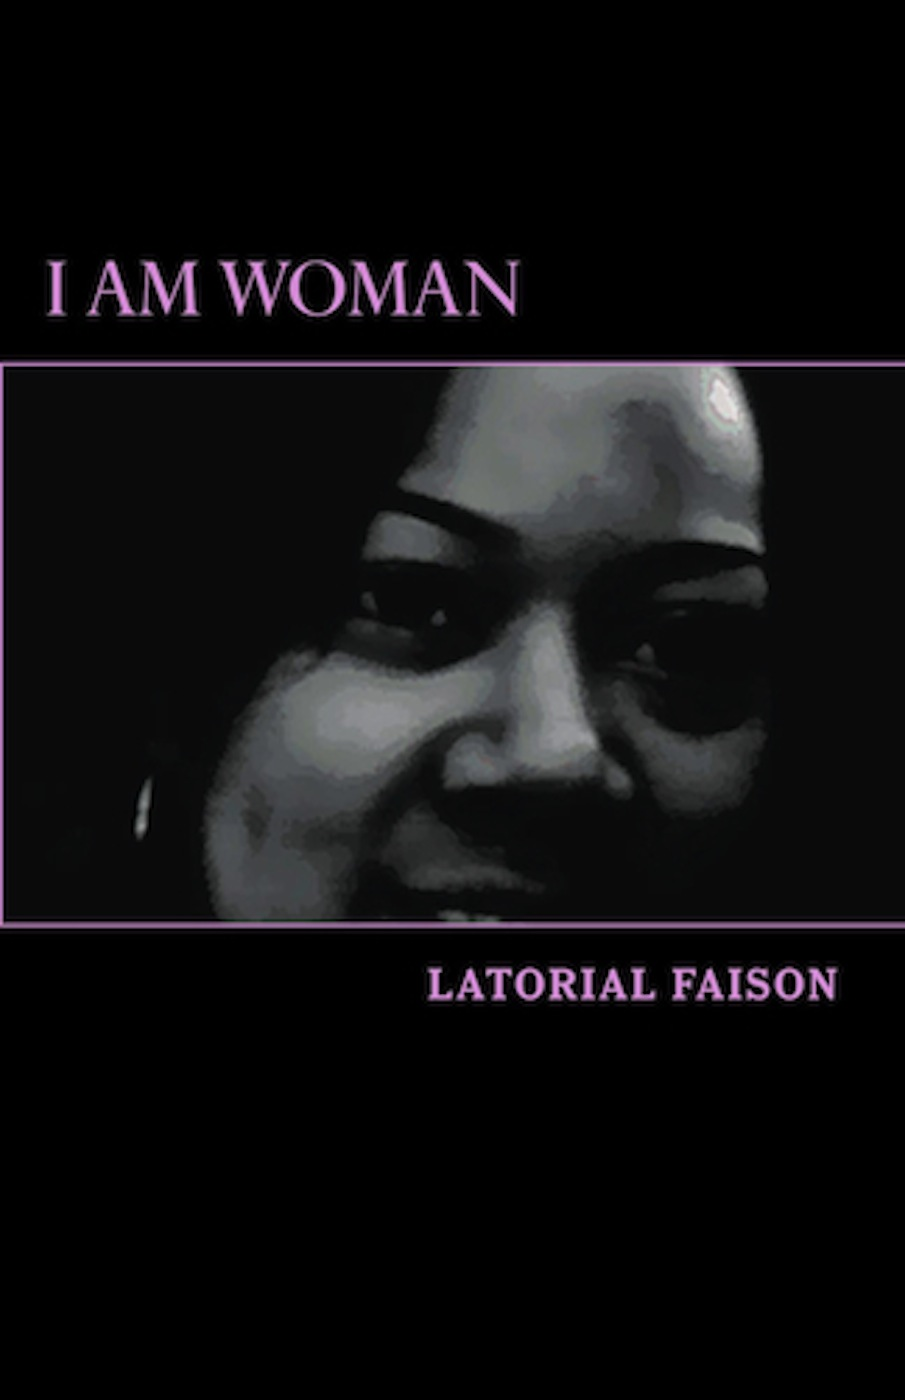 I AM WOMAN by Latorial Faison